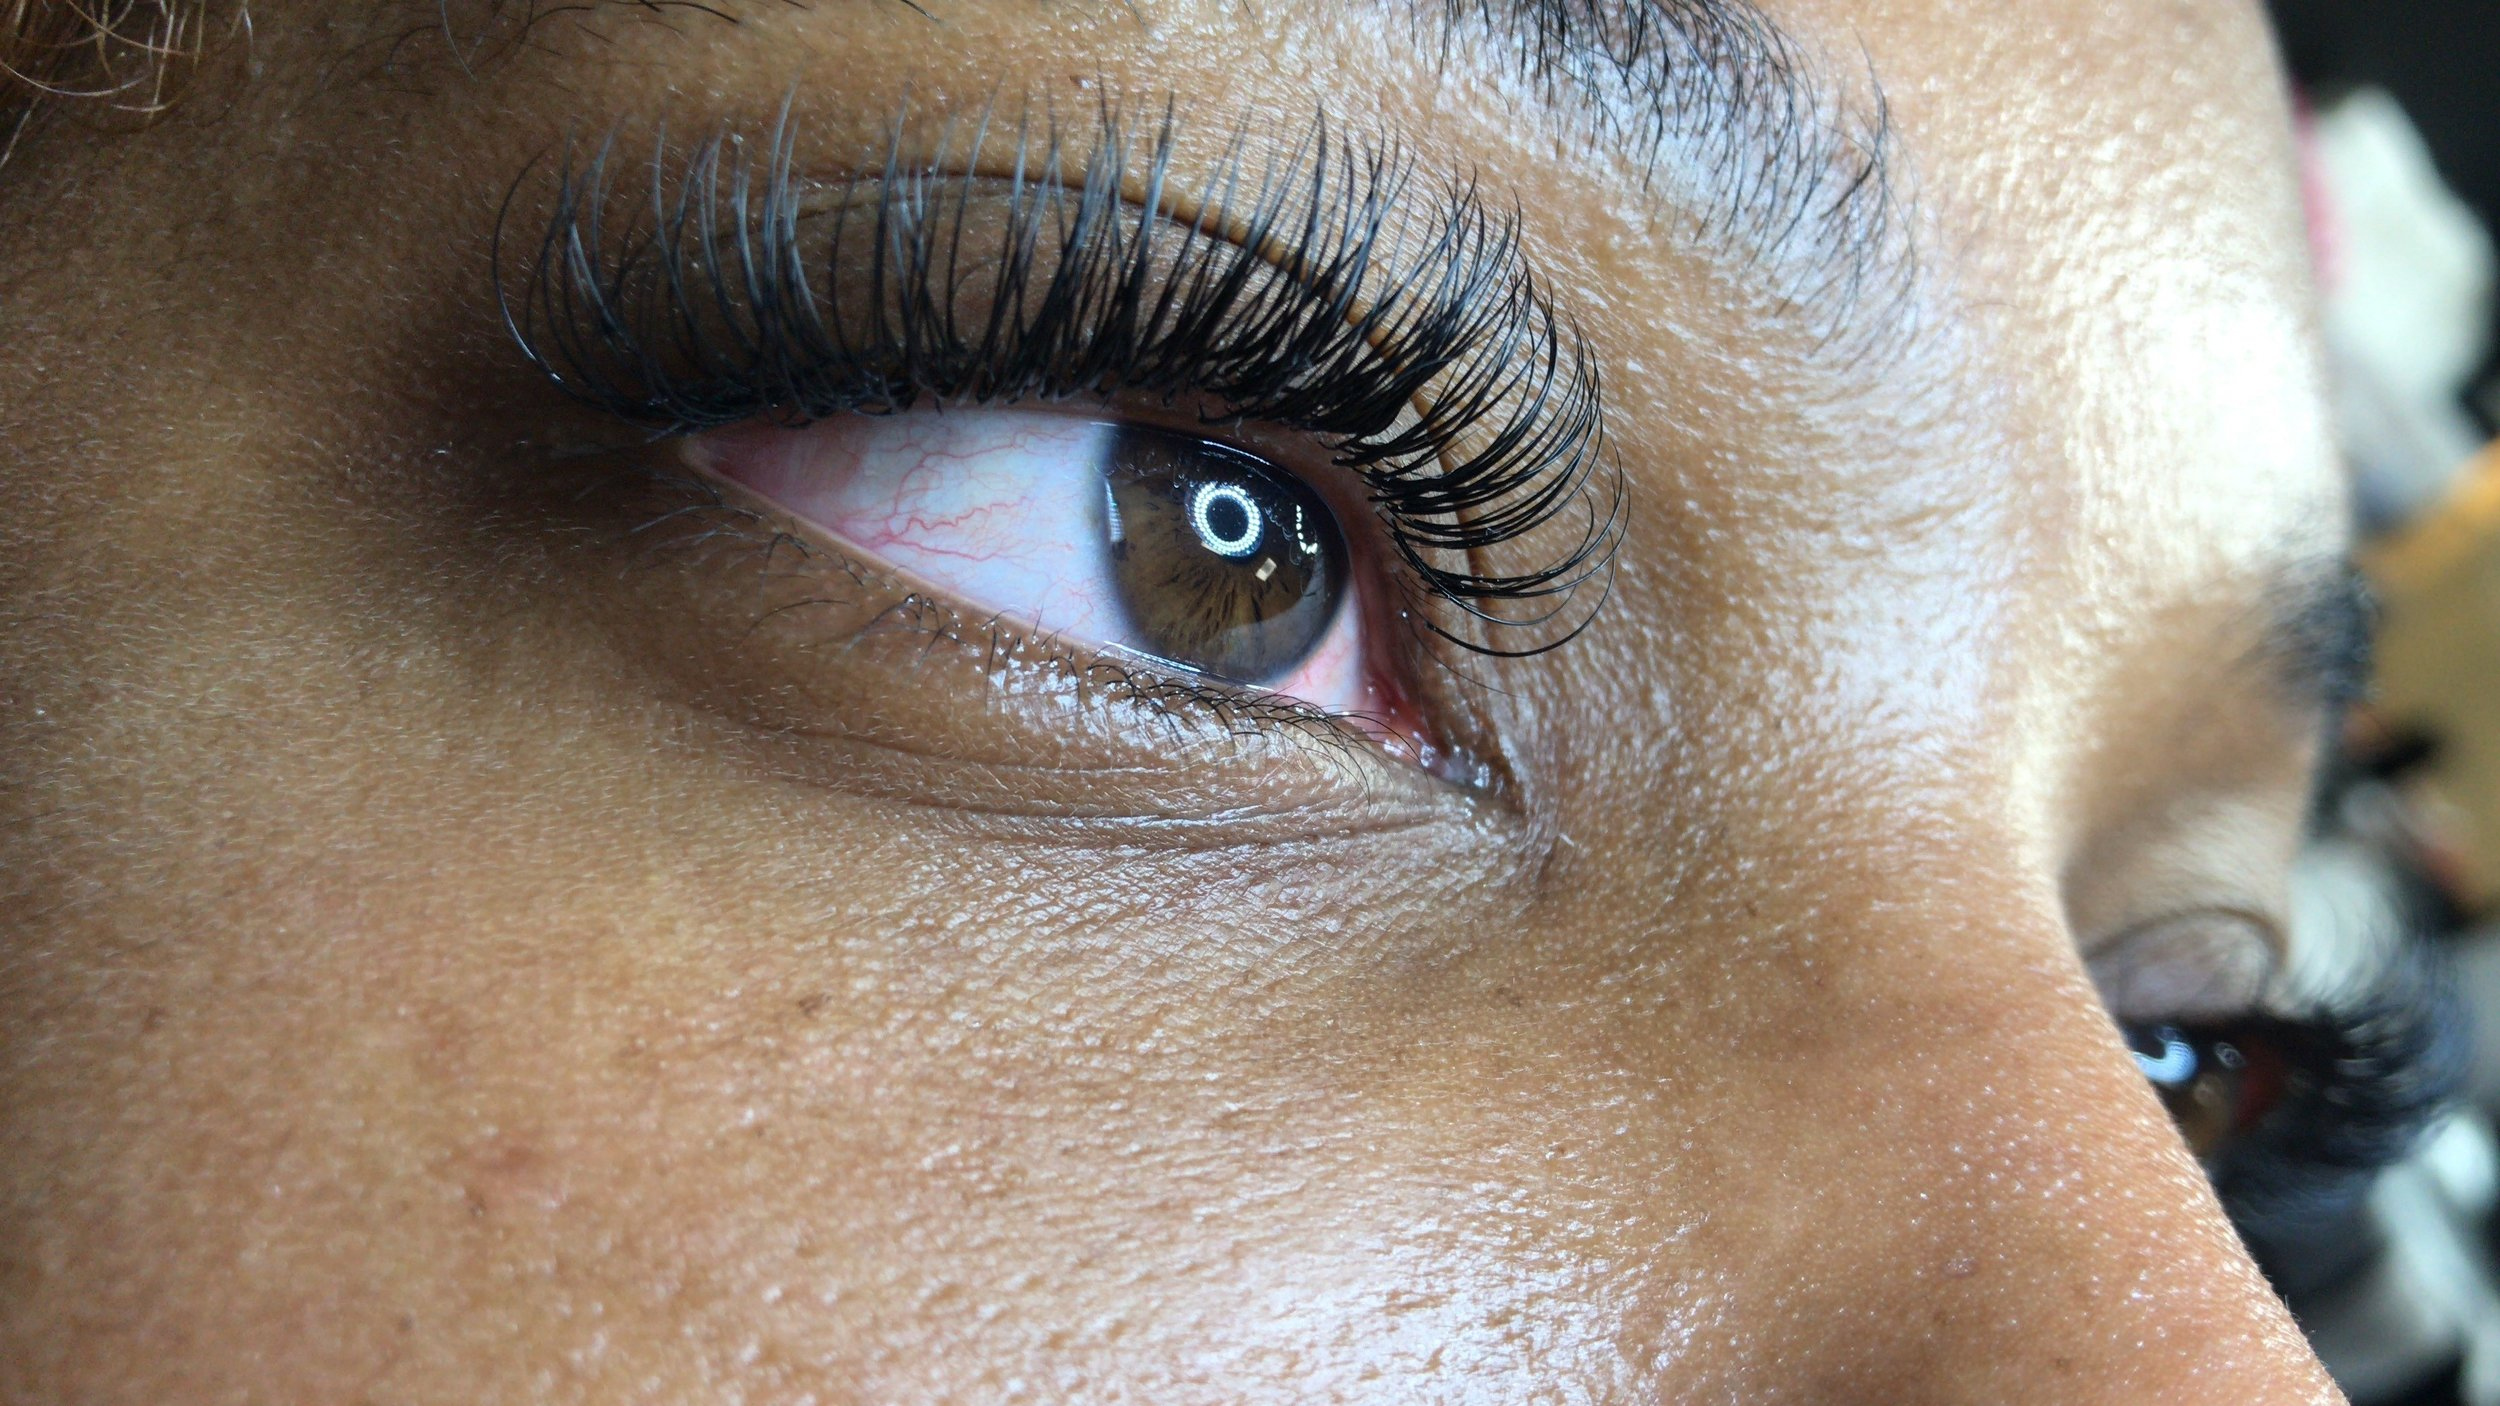 I love, love, love my lashes like always. I received a lot of compliments on how full and pretty my lashes look, like the last couple days. I can't wait to get lashes again for my birthday. Thank you -Danielle R